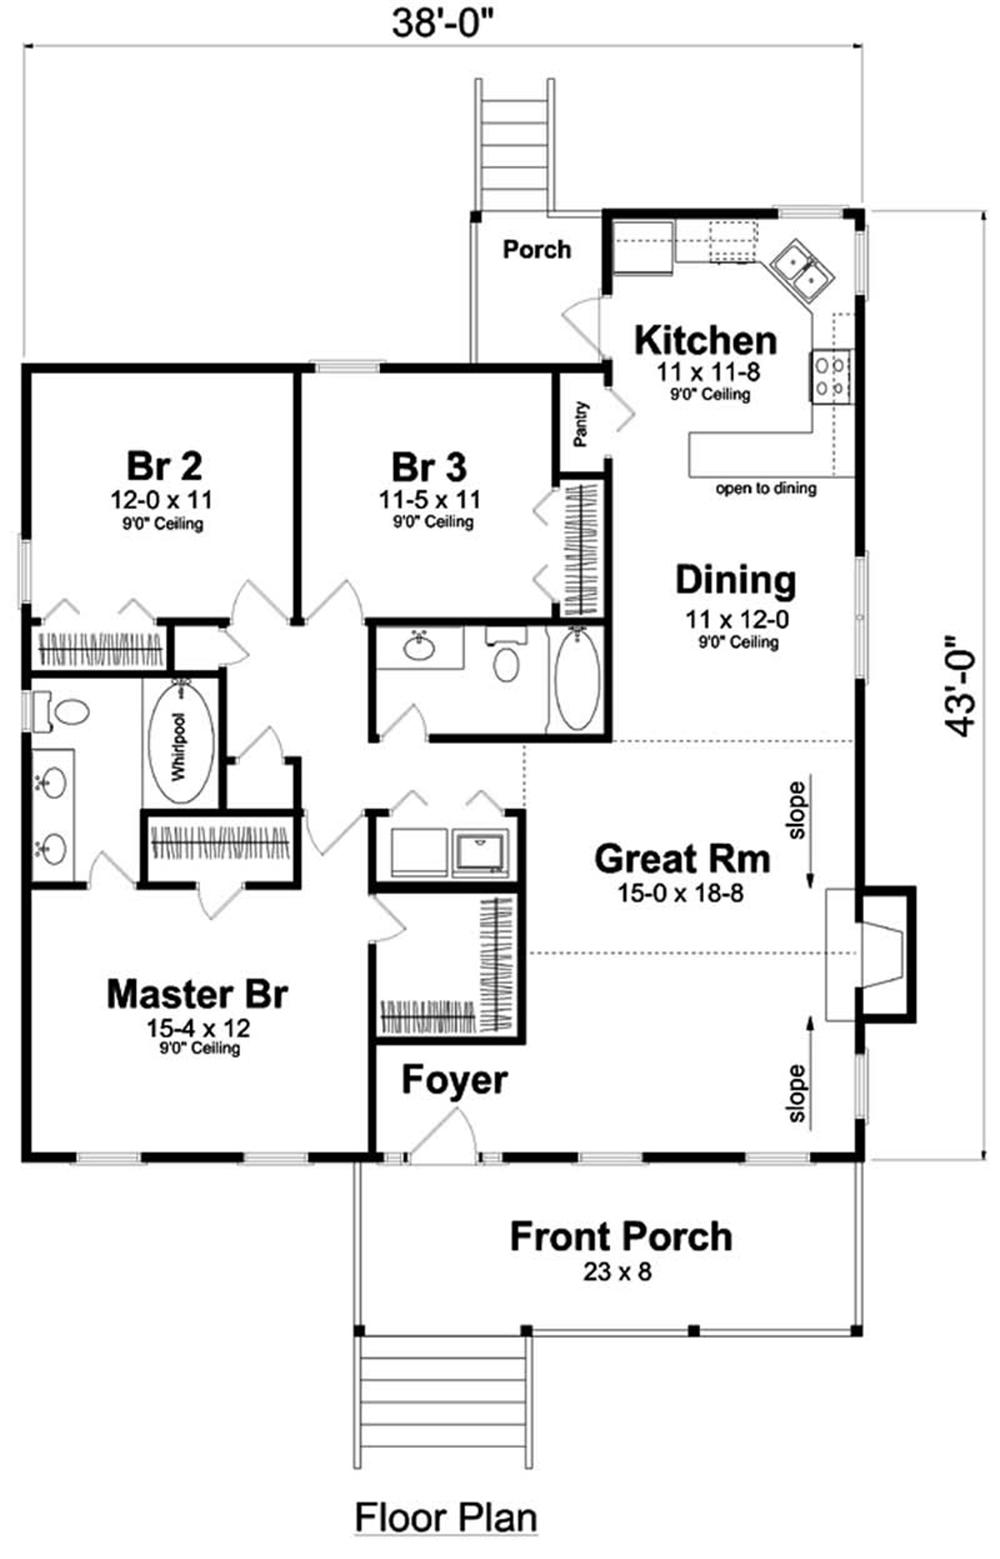 house plan GAR-74003 first floor